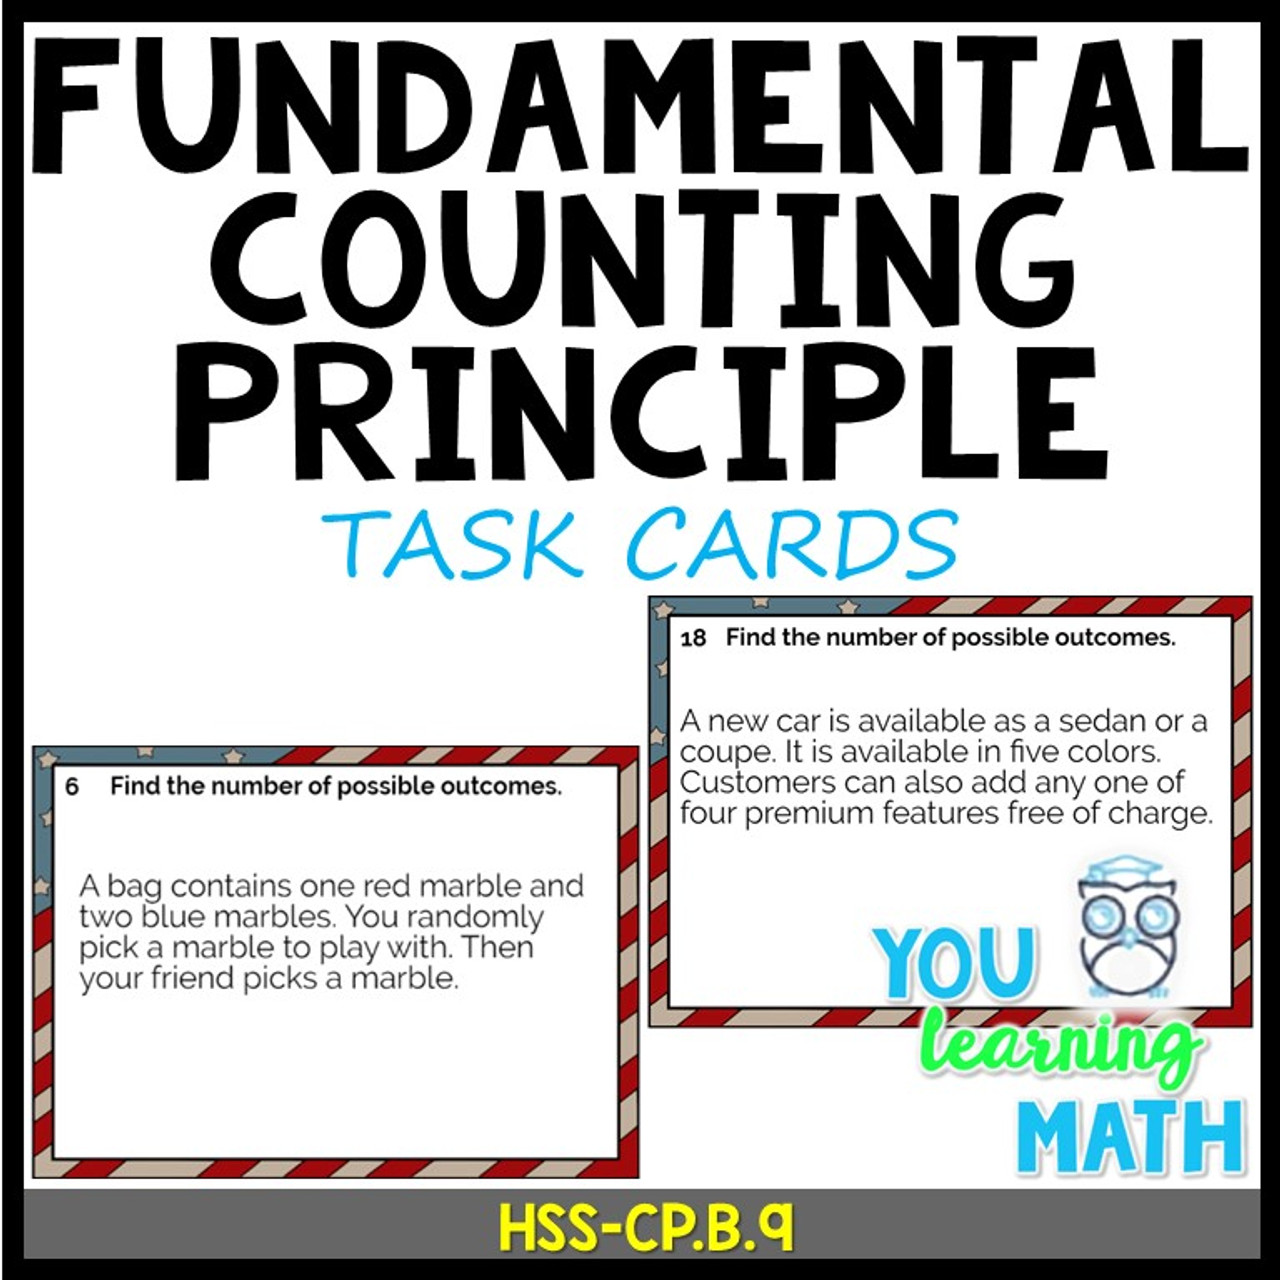 What Is The Fundamental Counting Principle Pertaining To Fundamental Counting Principle Worksheet